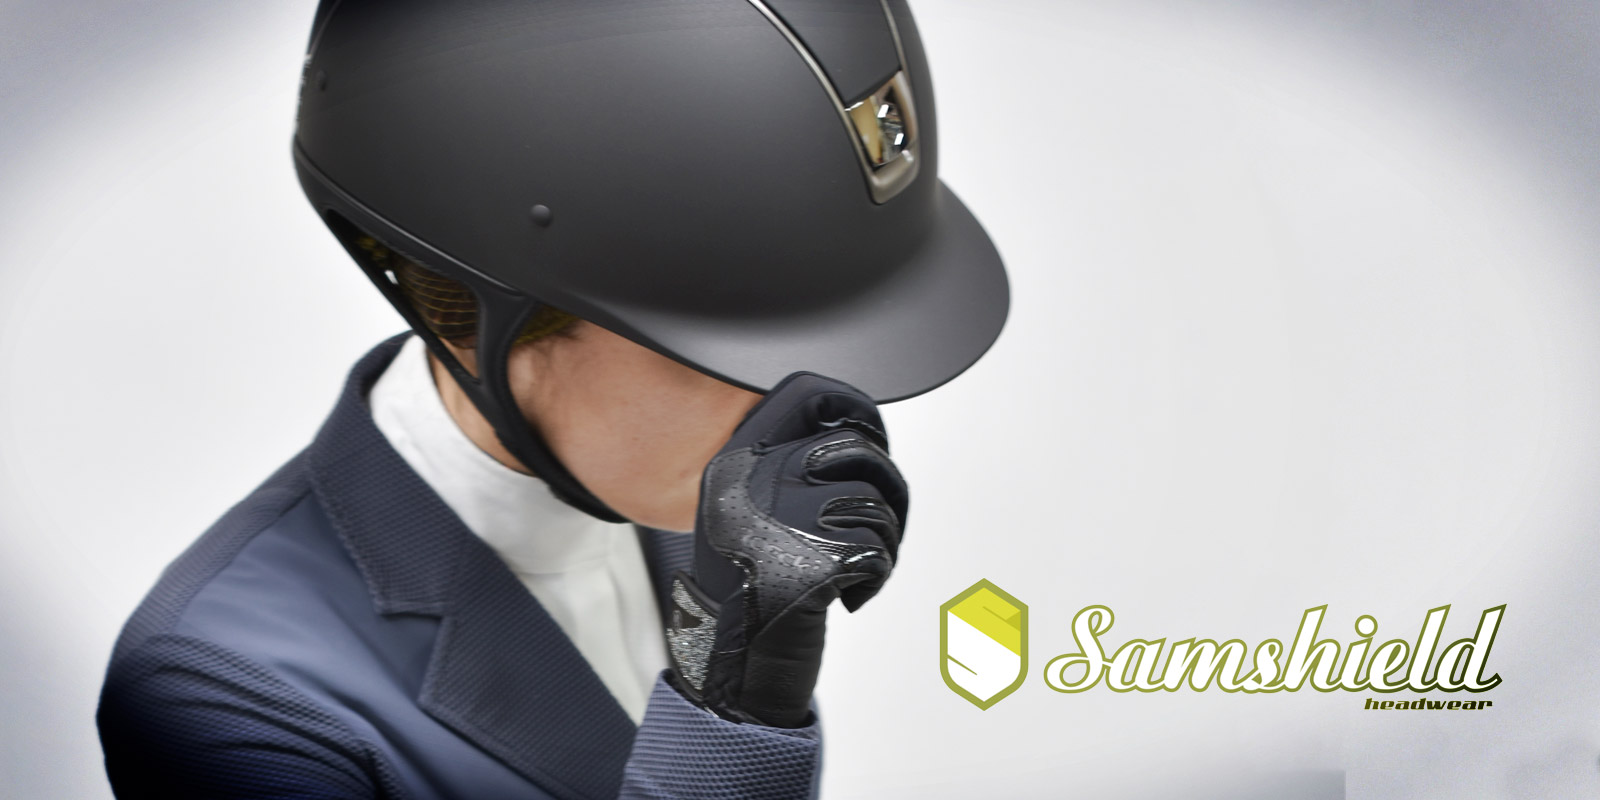 Chagrin Saddlery Helmet Fitting Guide